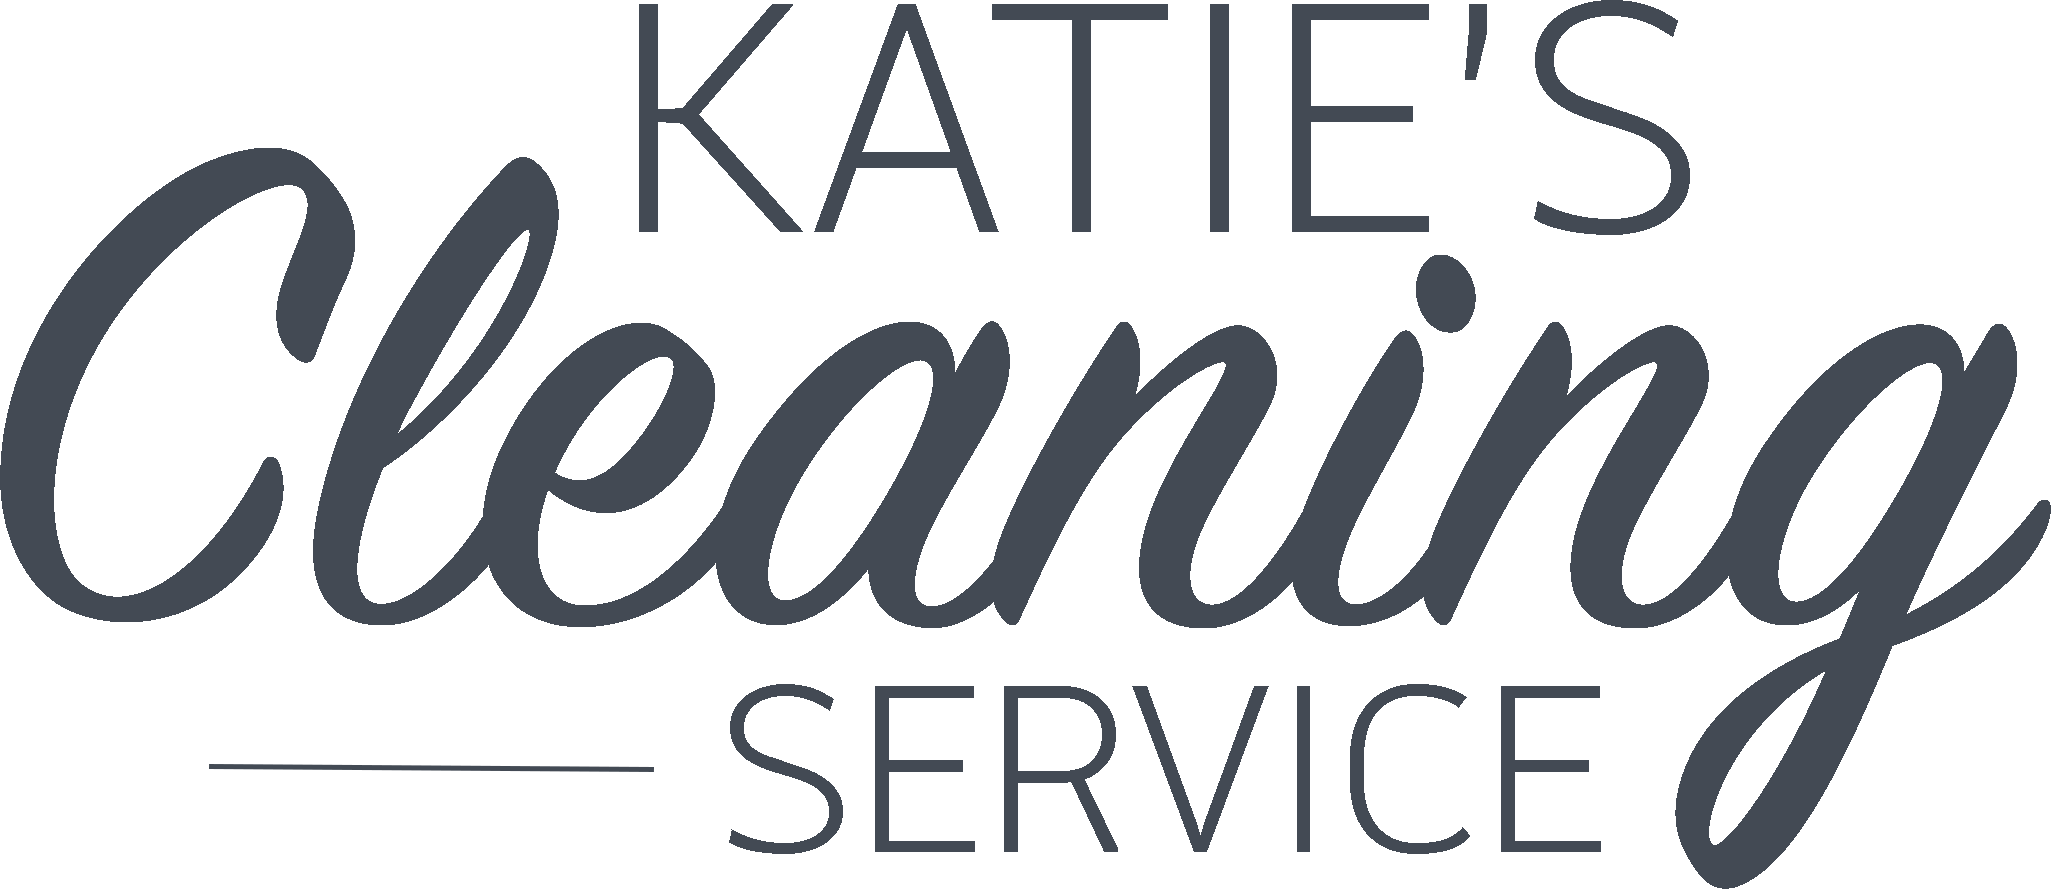 Katie's Cleaning Service Inc.